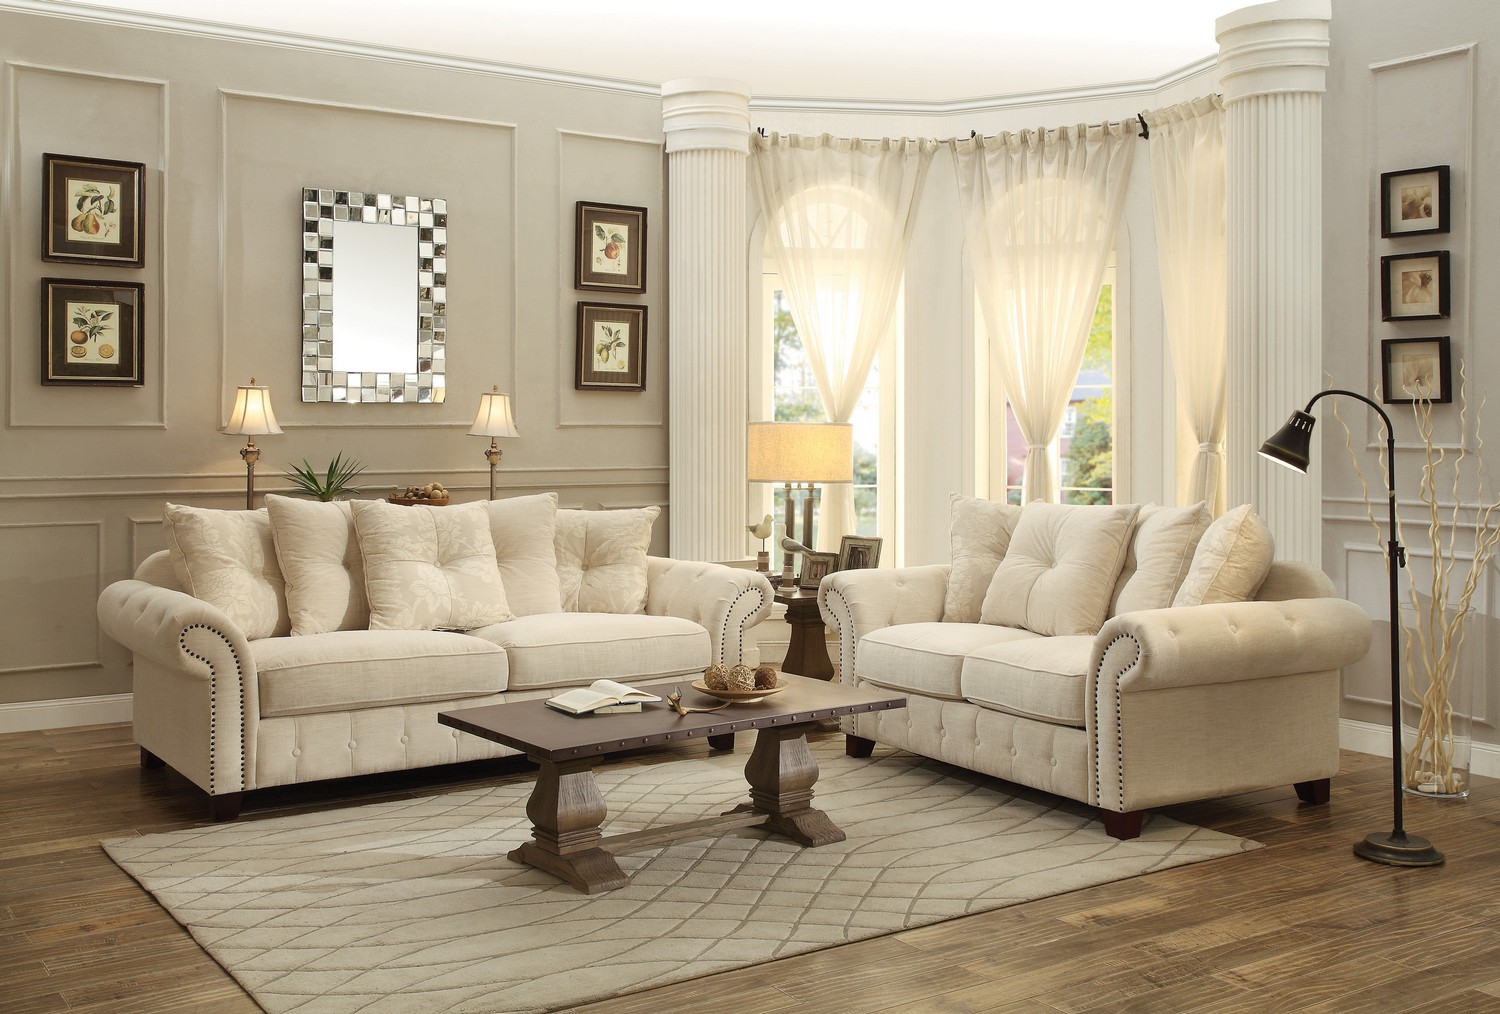 cream living room set. Homelegance Centralia Sofa Set  Polyester Blend Cream 8458 SOFA